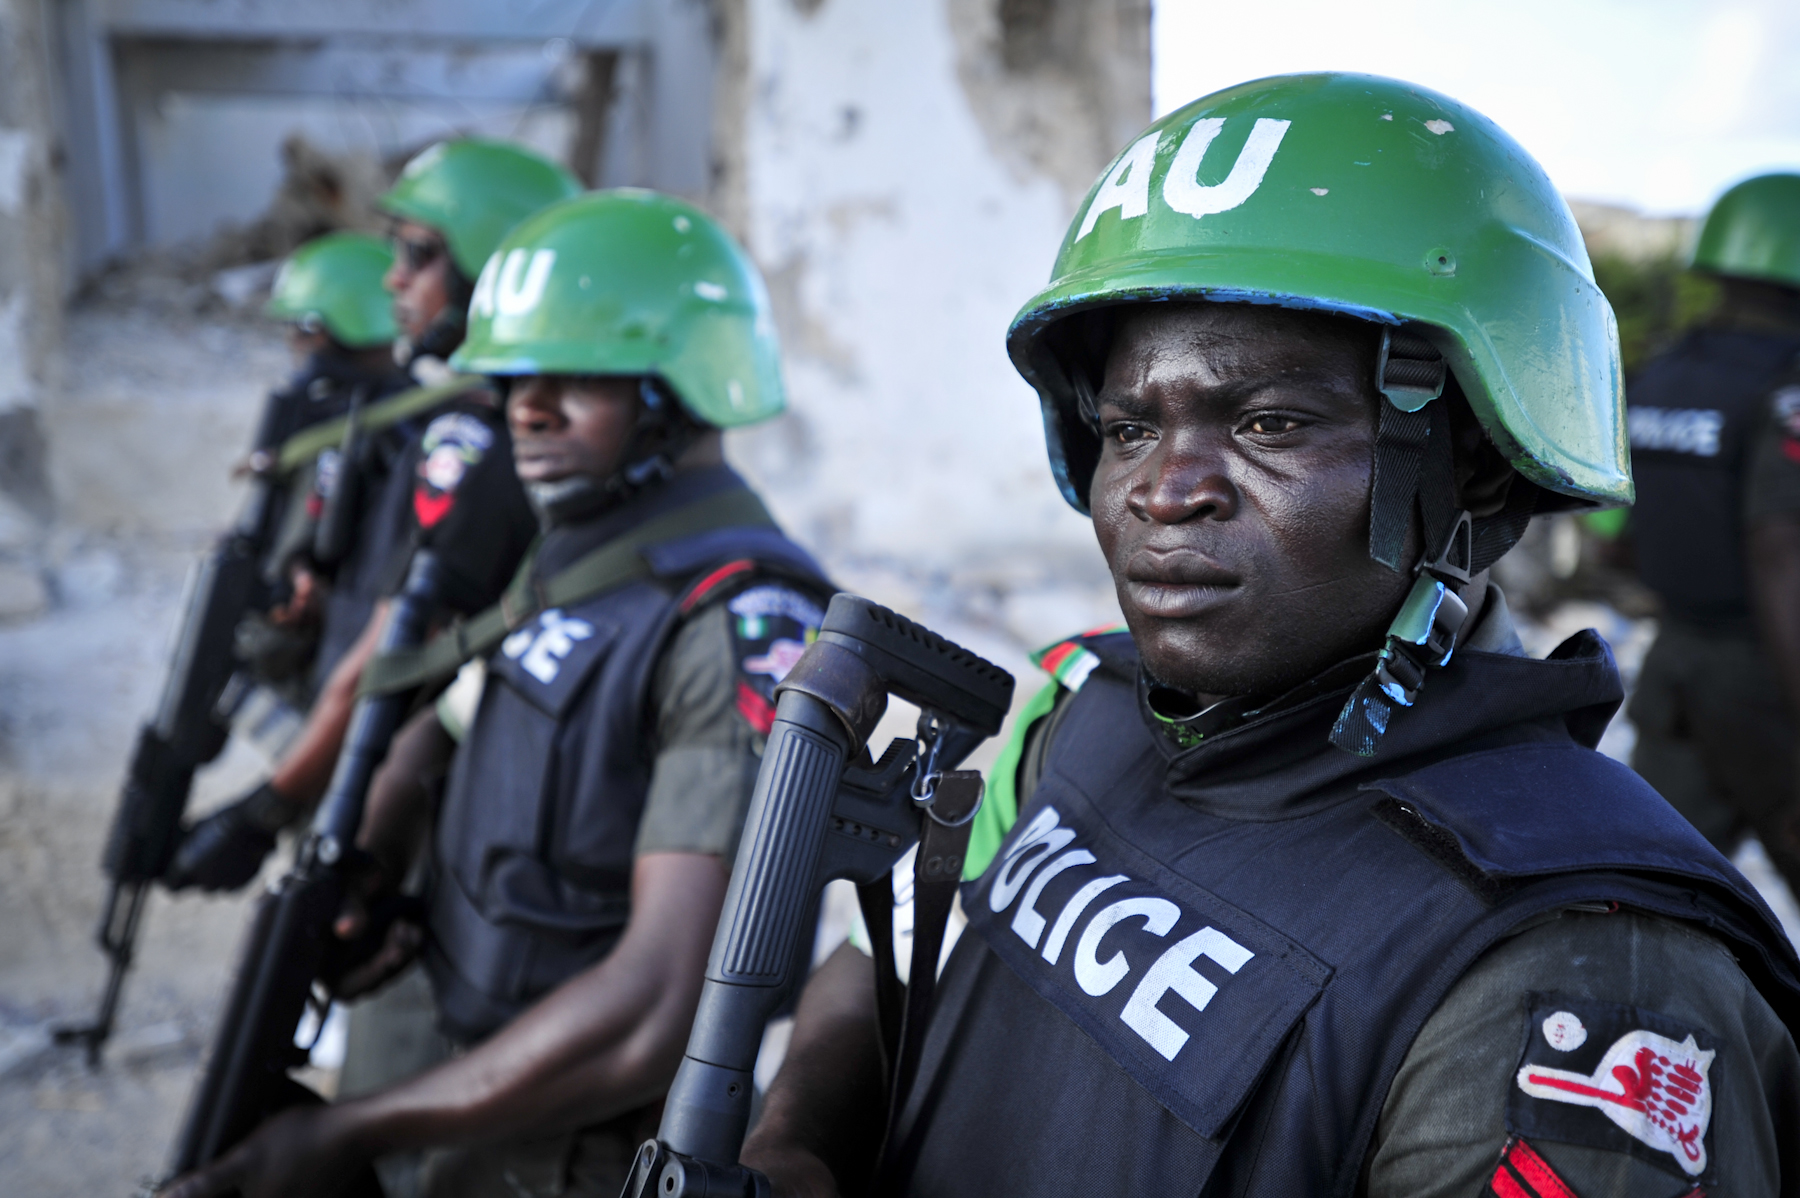 The systemic issues behind Nigeria's police force